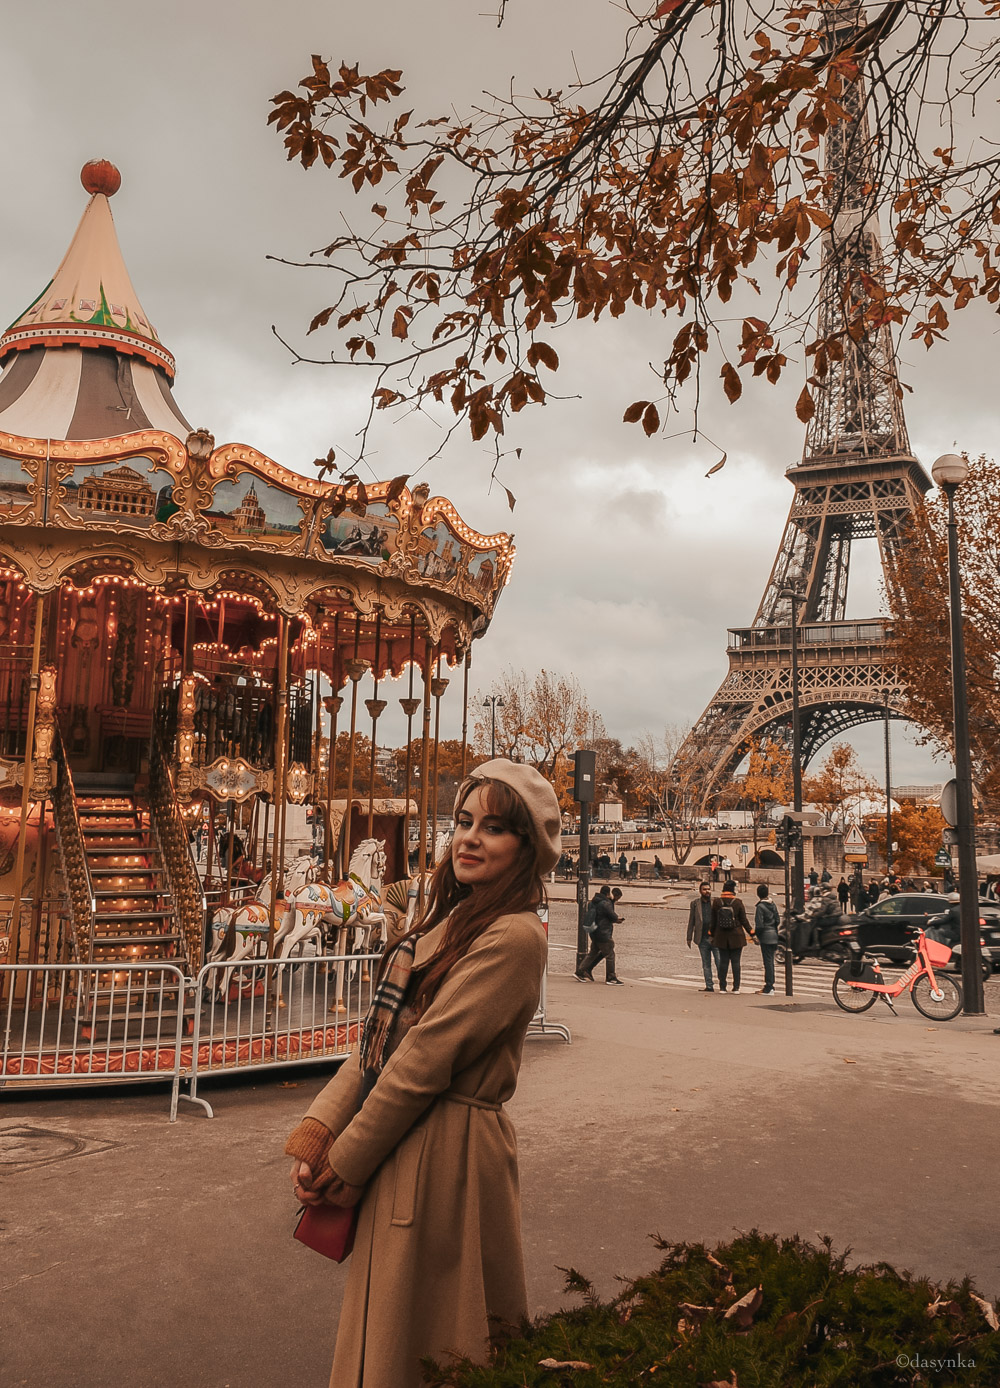 dasynka-fashion-blog-blogger-influencer-inspo-inspiration-shooting-model-globettrotter-travel-girl-lookbook-instagram-instagrammer-long-hair-street-style-casual-italy-lifestyle-outfit-poses-look-ootd-ideas-elegant-italian-paris-coat-camel-burberry-hat-basque-browne-boots-black-shirt-bow-sweater-cozy-parisien-parisienne-parisian-neutral-beige-white-scarf-france-tour-eiffel-champs-elysees-trocadéro-carousel